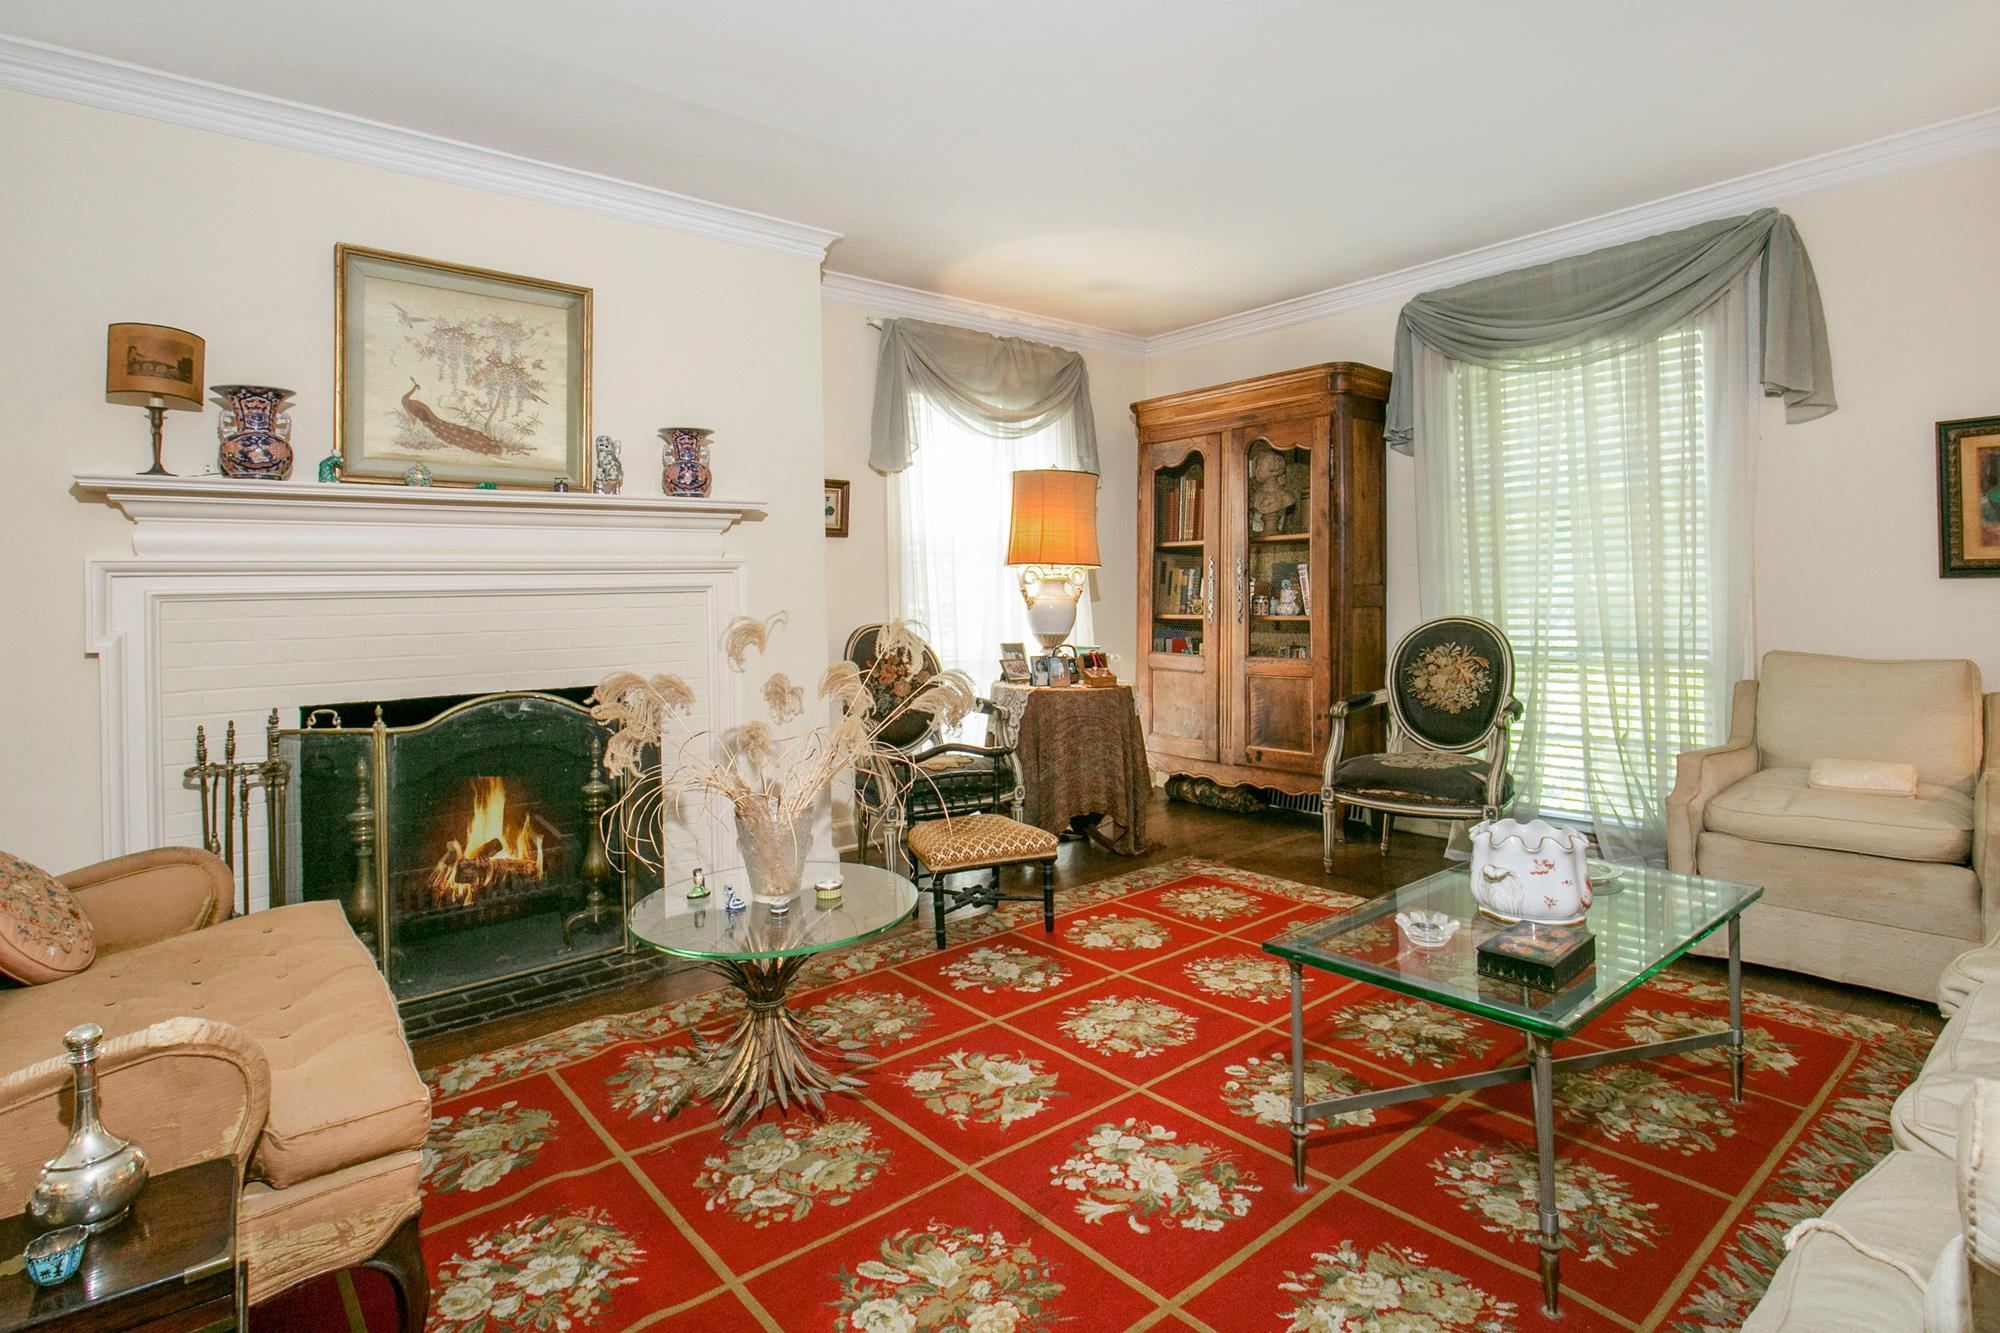 ESTATE SALE -- : Quaint & Charming 3-Bd. Brick House w/ Large, Level, Grassy Yard + Patio & Garden